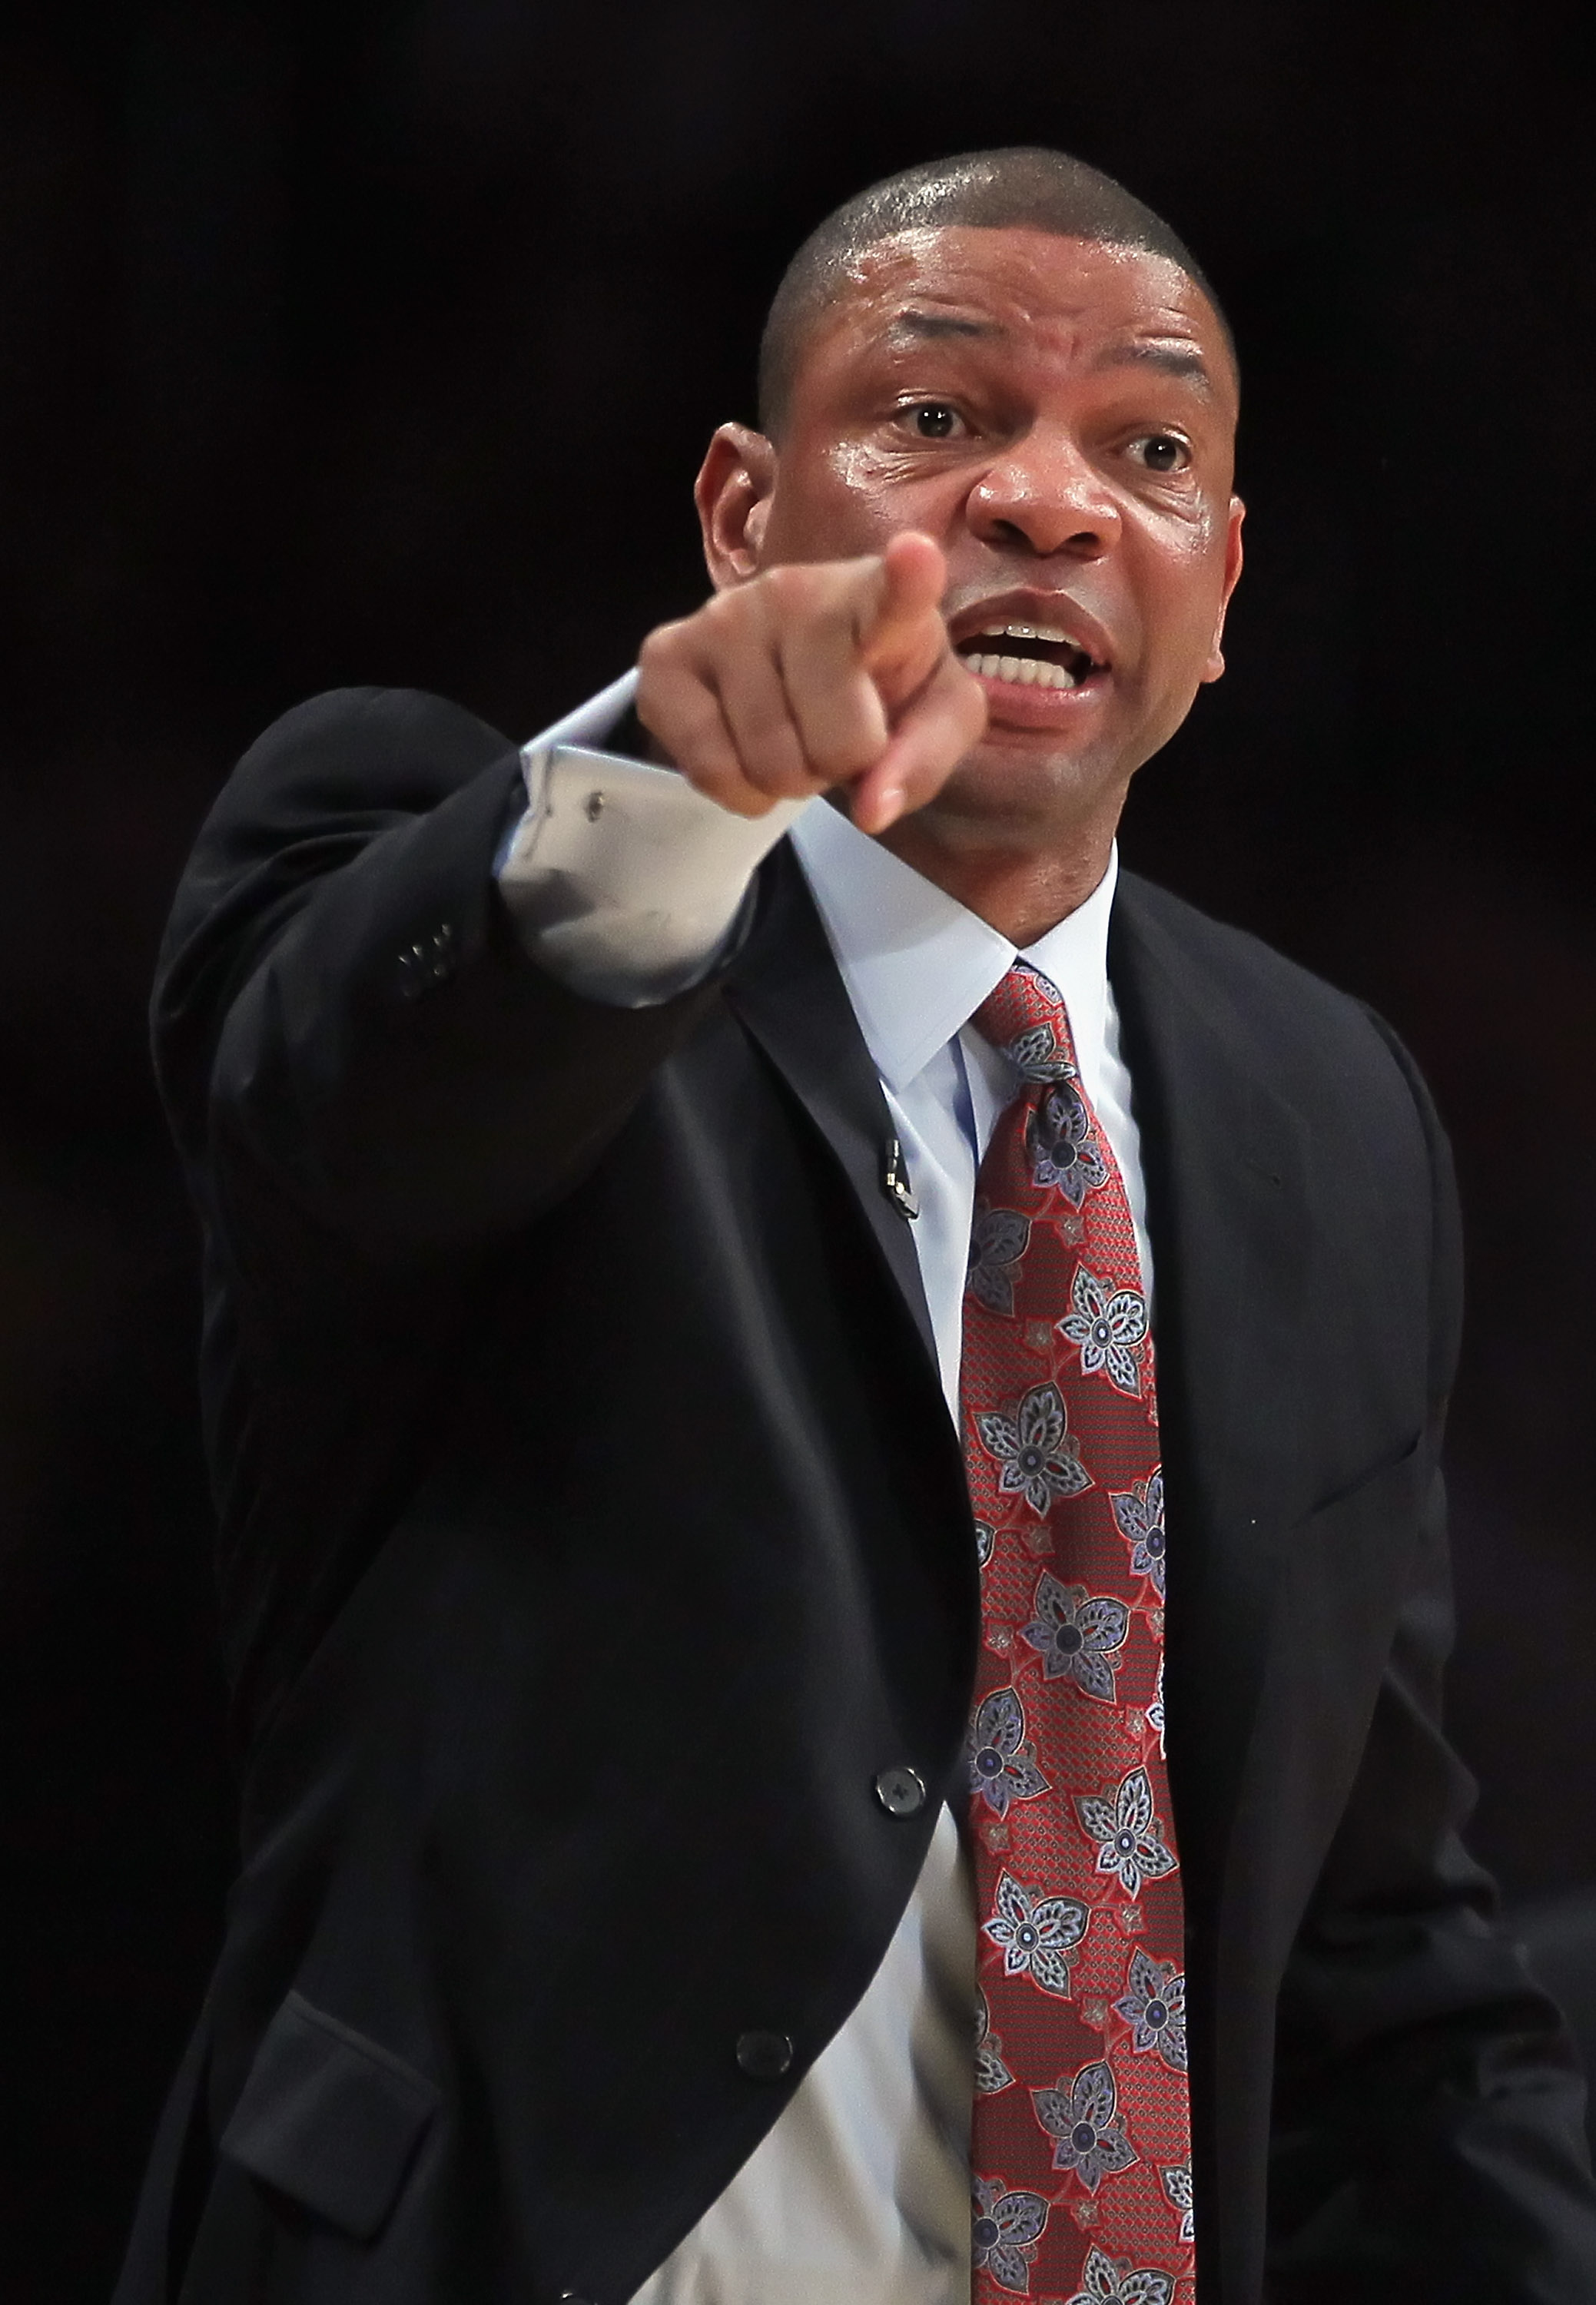 LOS ANGELES, CA - JANUARY 30:  Boston Celtics head coach Doc Rivers shouts instructions from the bench against the Los Angeles Lakers at Staples Center on January 30, 2011 in Los Angeles, California. The Celtics defeated the Lakers 109-96.  (Photo by Jeff